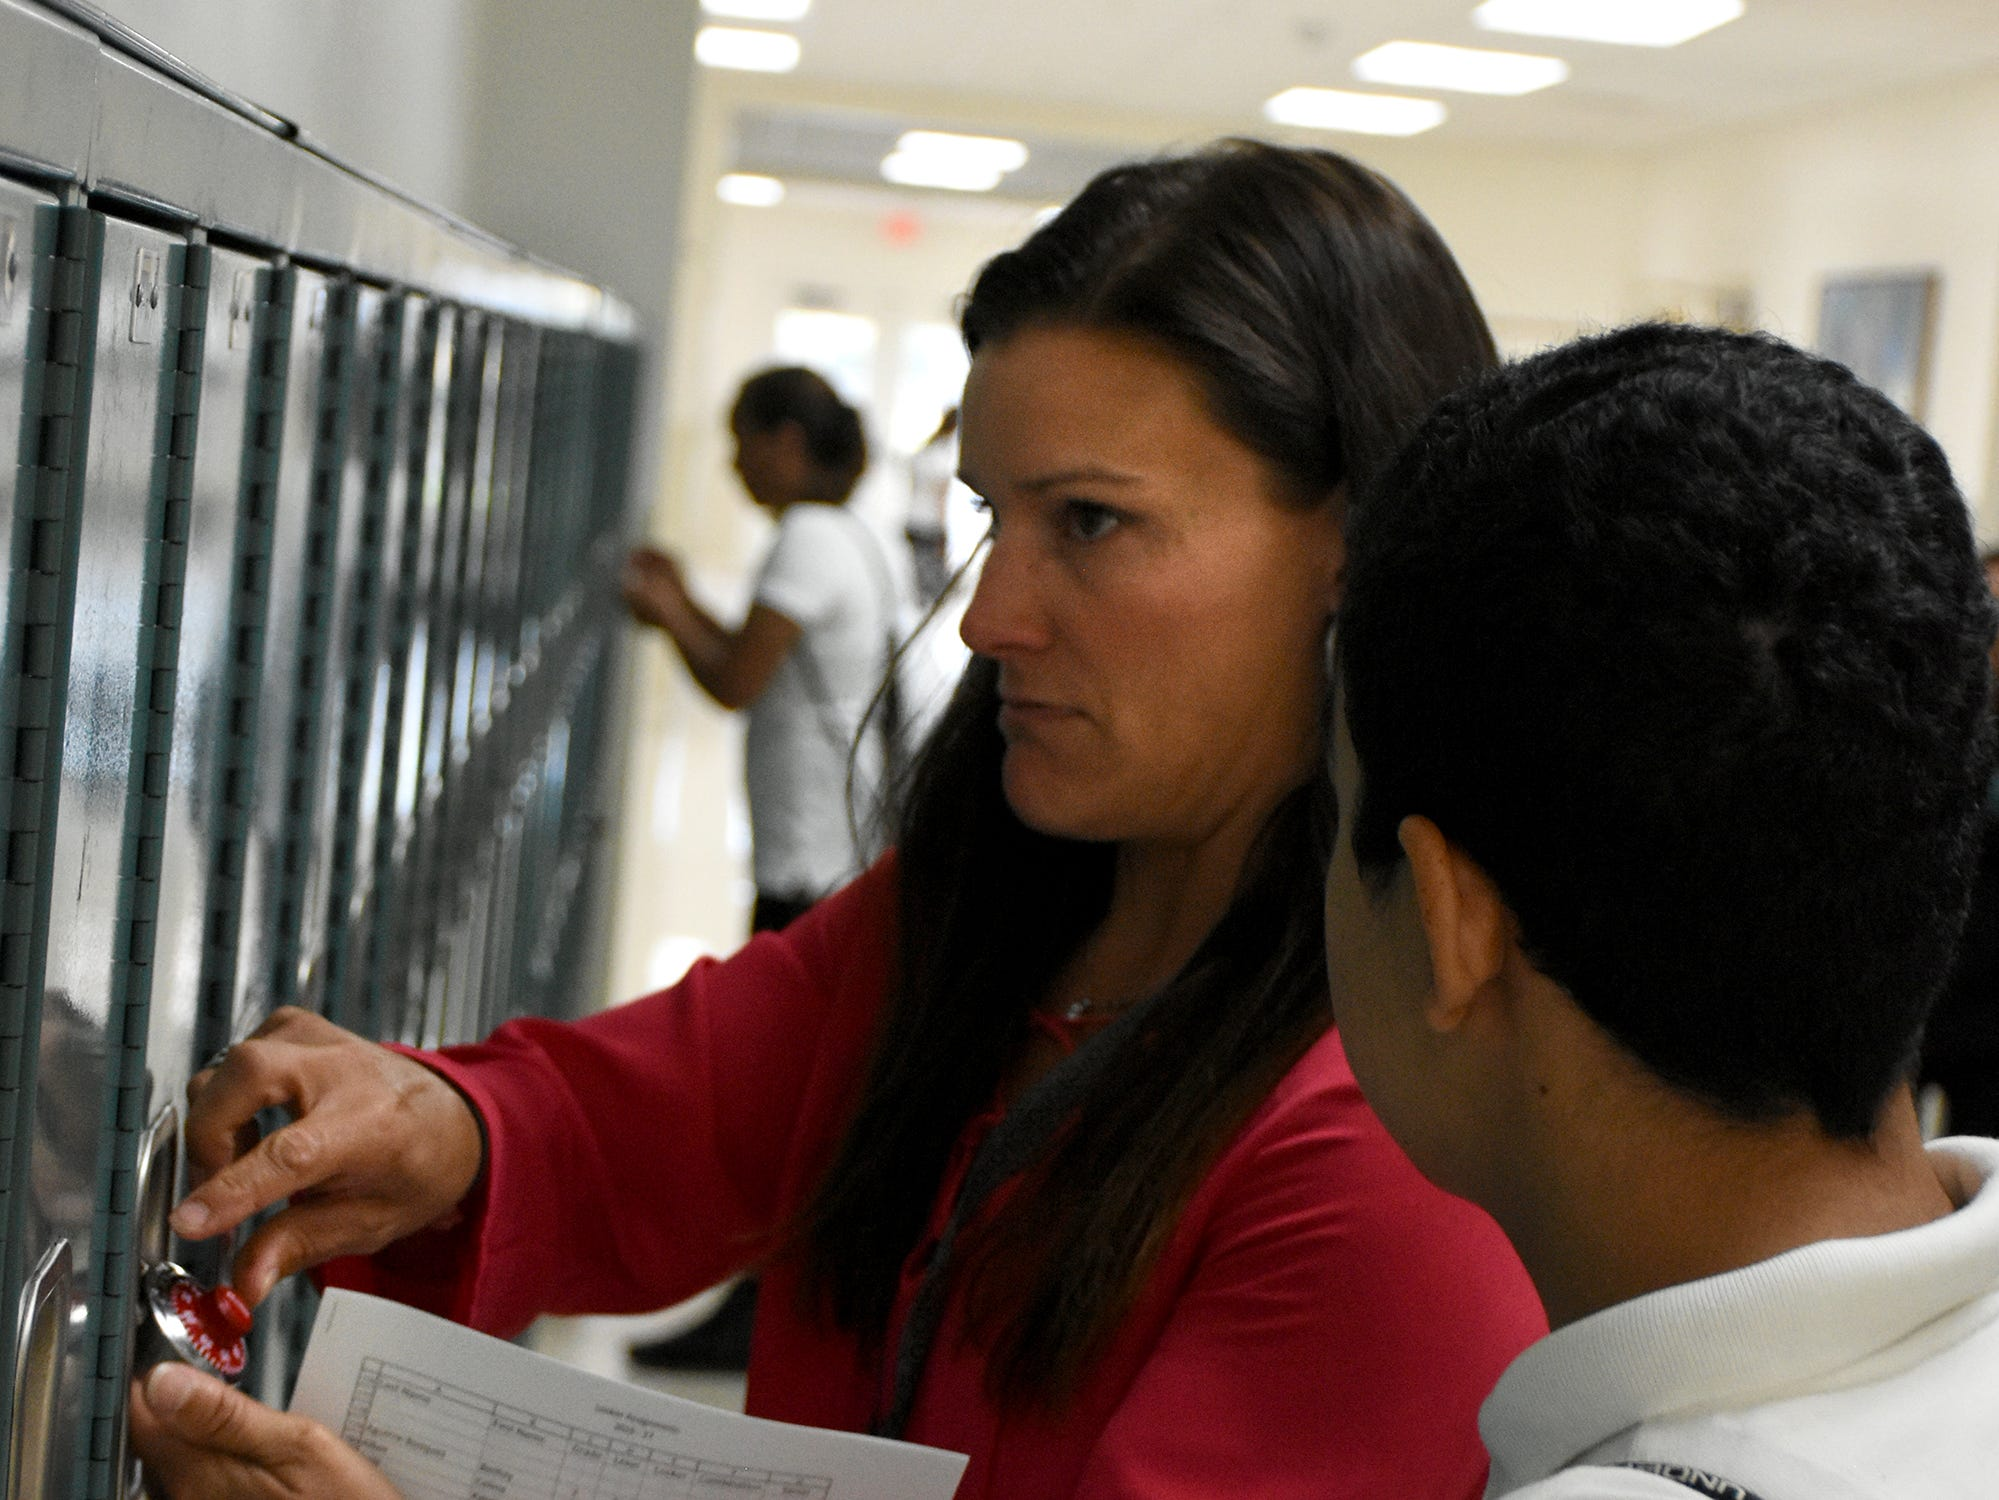 Science teacher Carrie Doxsee assists a student with his locker. School secretary Rona Donato directs students on the first day at Marco Island Charter Middle School. Marco Island students, along with all of Collier County, returned to school for the first day of classes in the new school year on Wednesday.